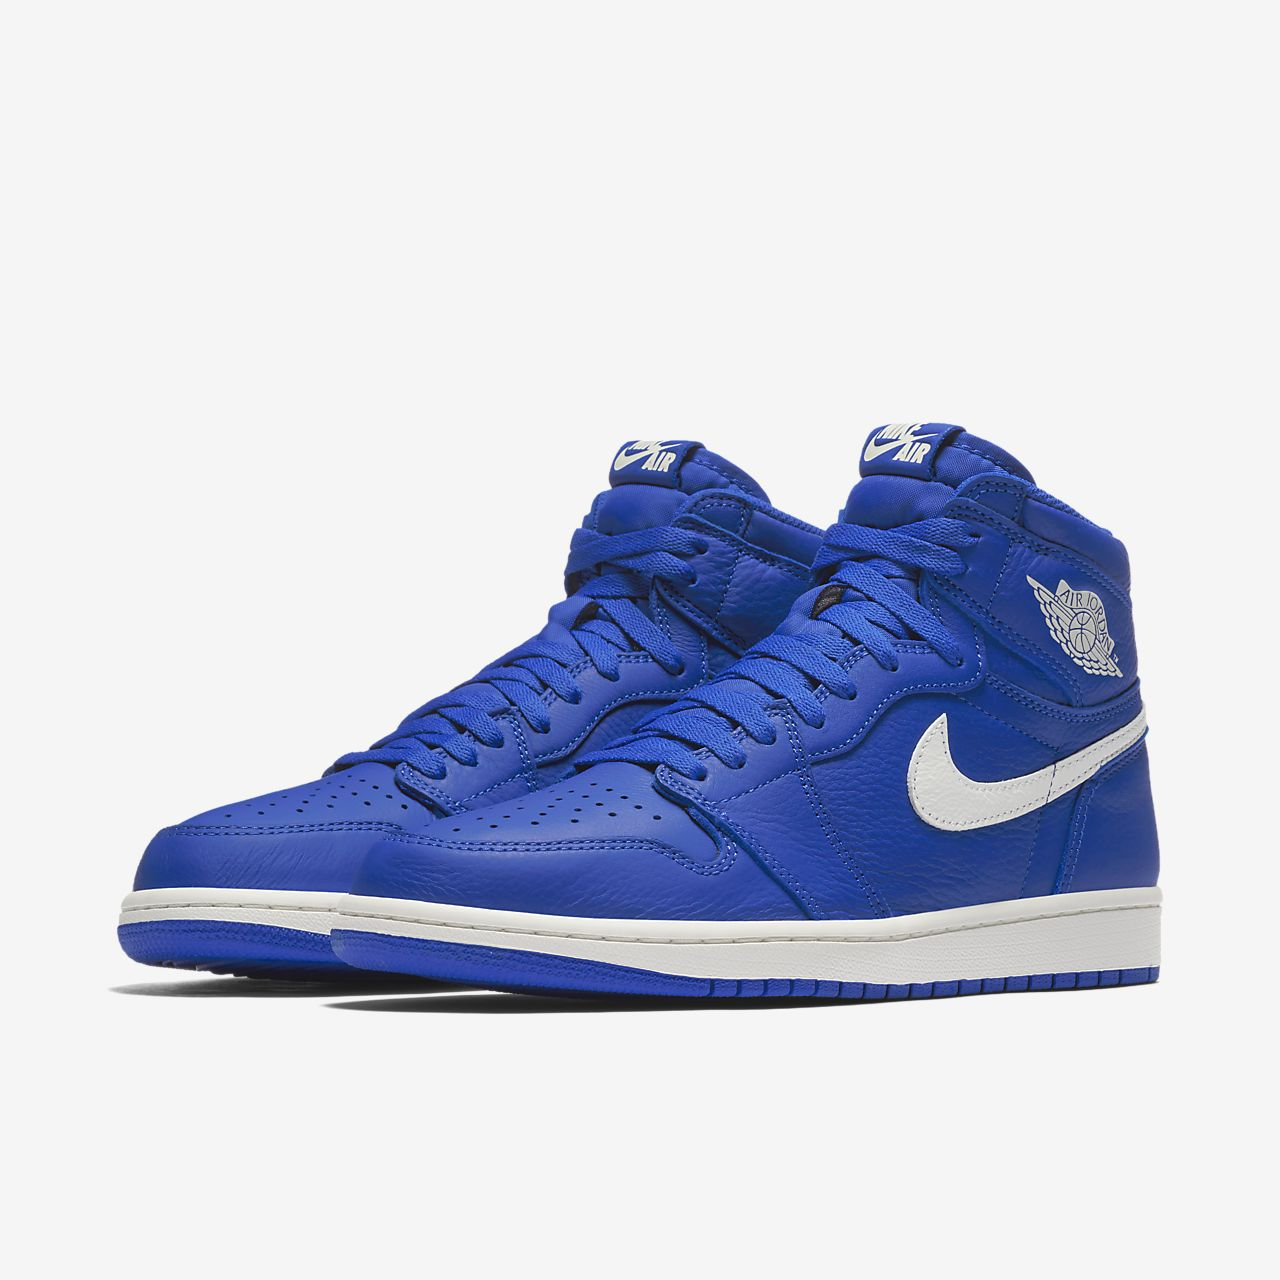 fee6cd49e479 Air Jordan 1 Retro High OG Shoe. Nike.com AU